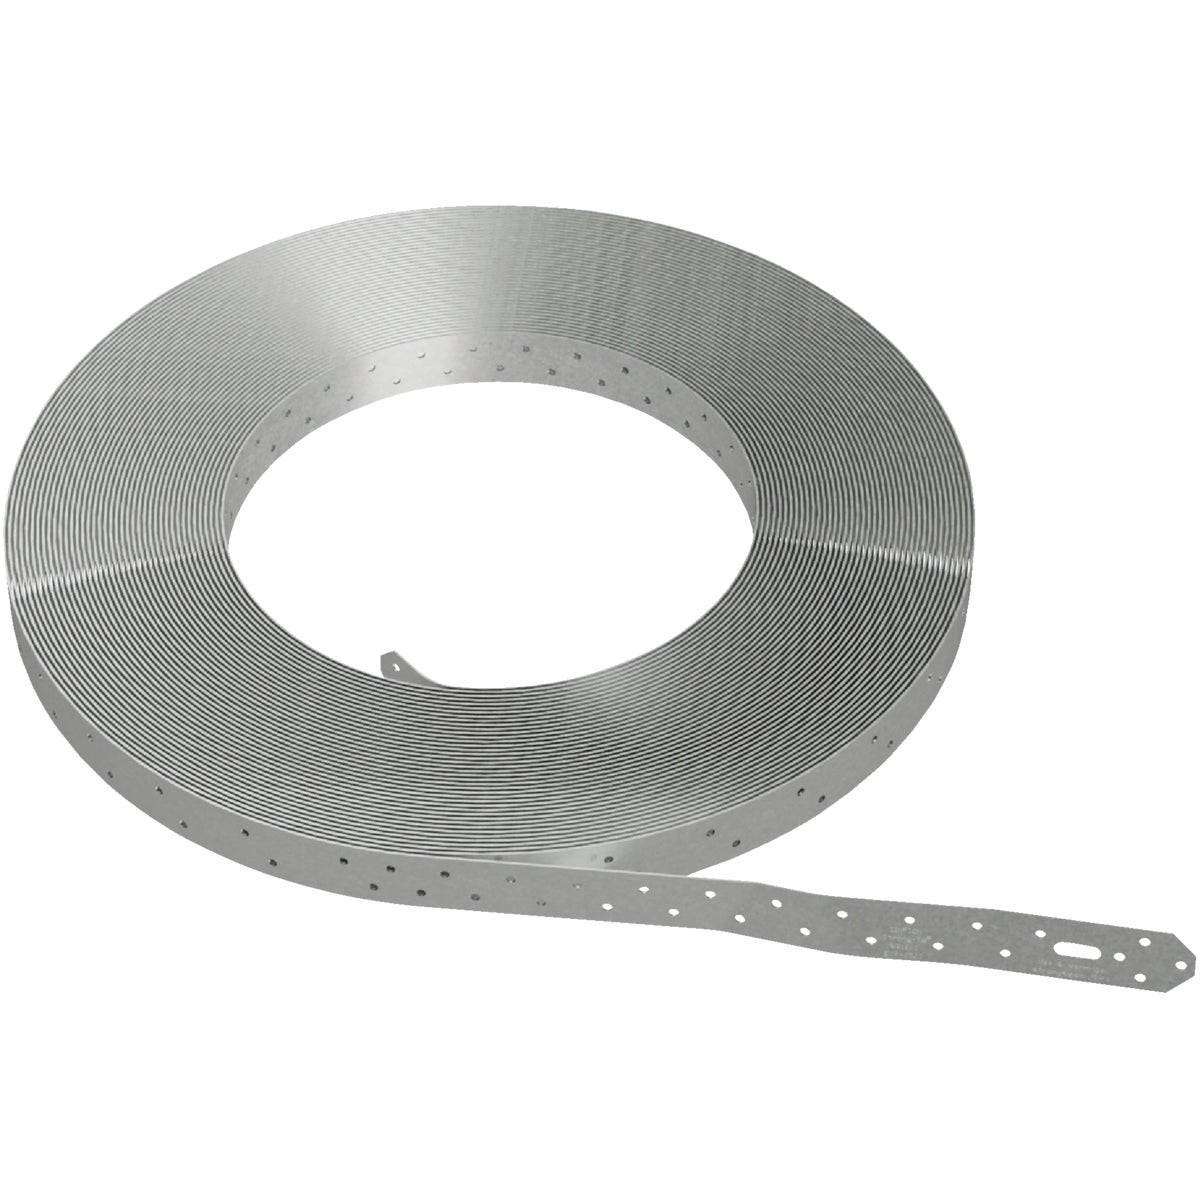 WALL BRACING COIL - WB126C by Simpson Strong Tie